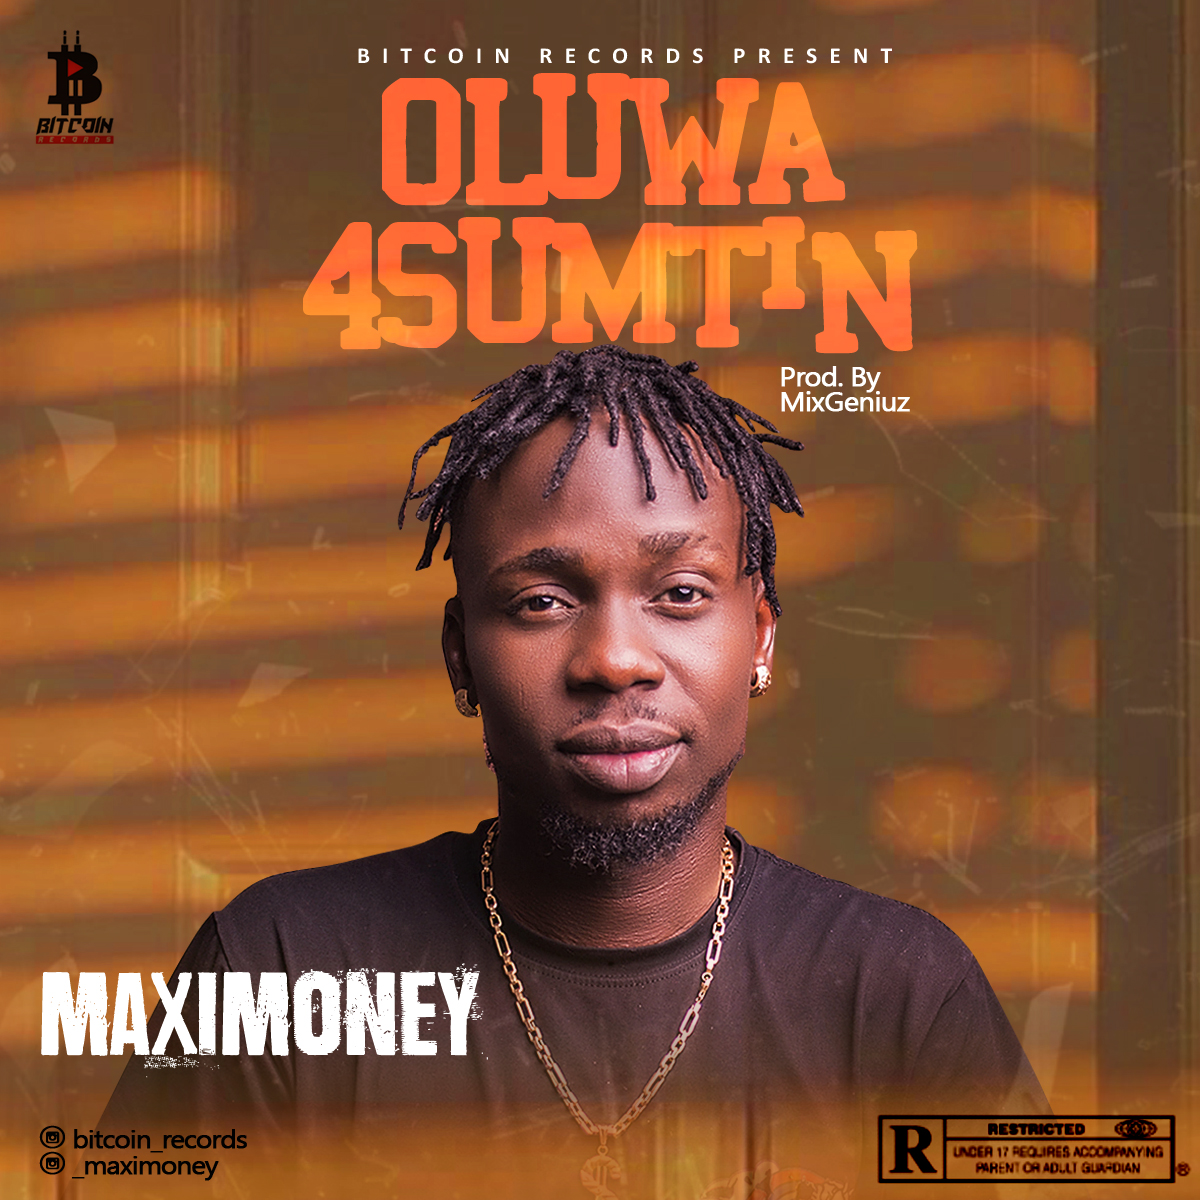 MaxiMoney - Oluwa4sumtin